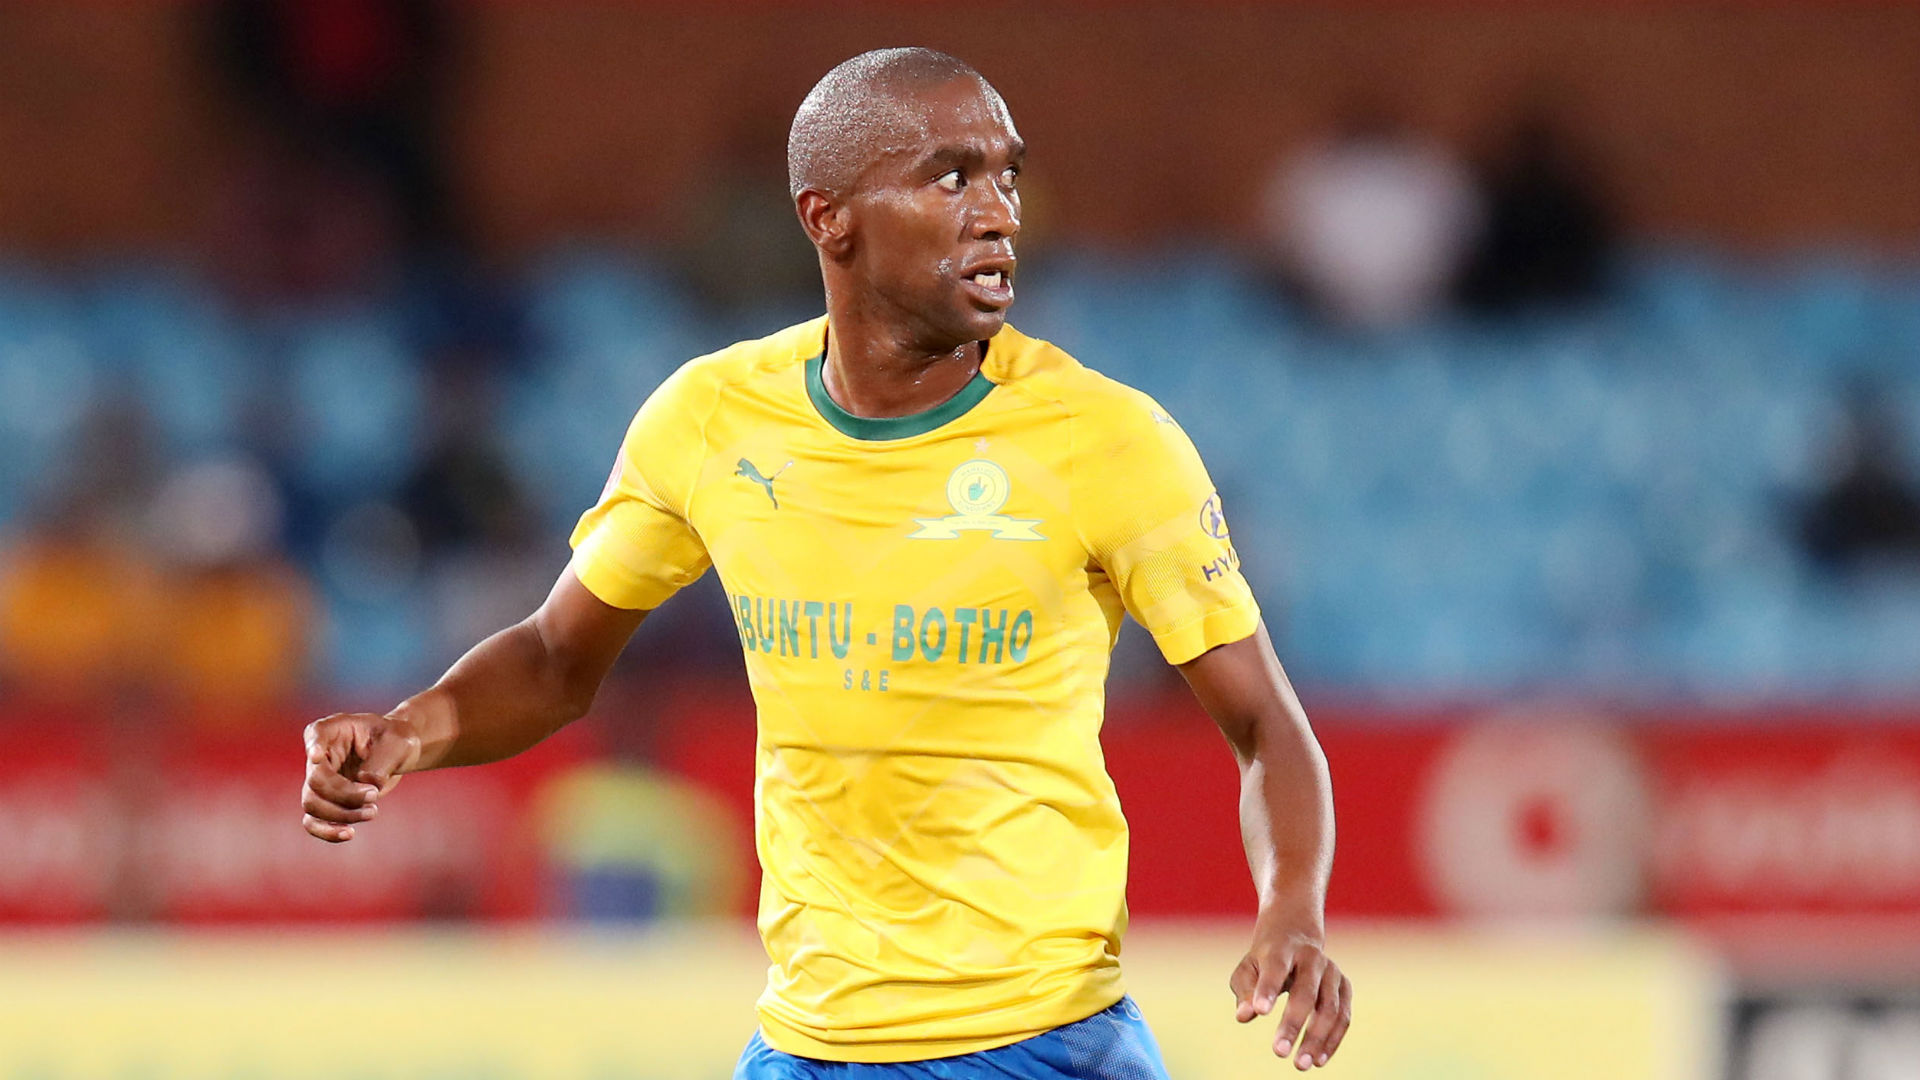 Ngcongca: Confusion as KSV Roeselare announce signing of Mamelodi Sundowns defender